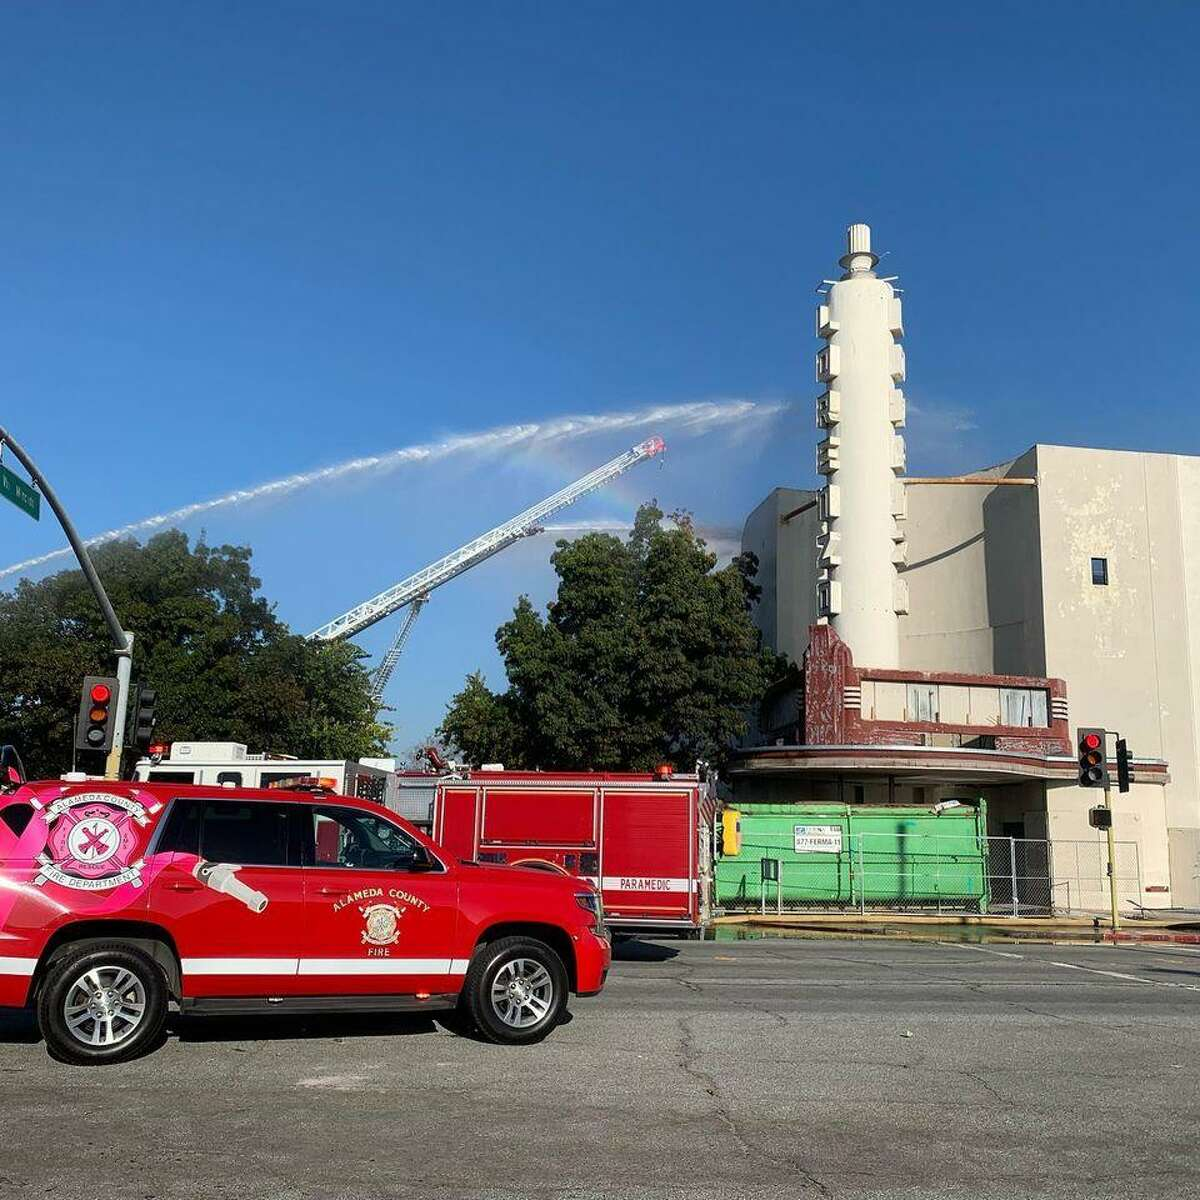 Alameda County firefighters responded to a blaze at the Lorenzo Theatre on Hesperian Boulevard at about 3:40 p.m. Friday.